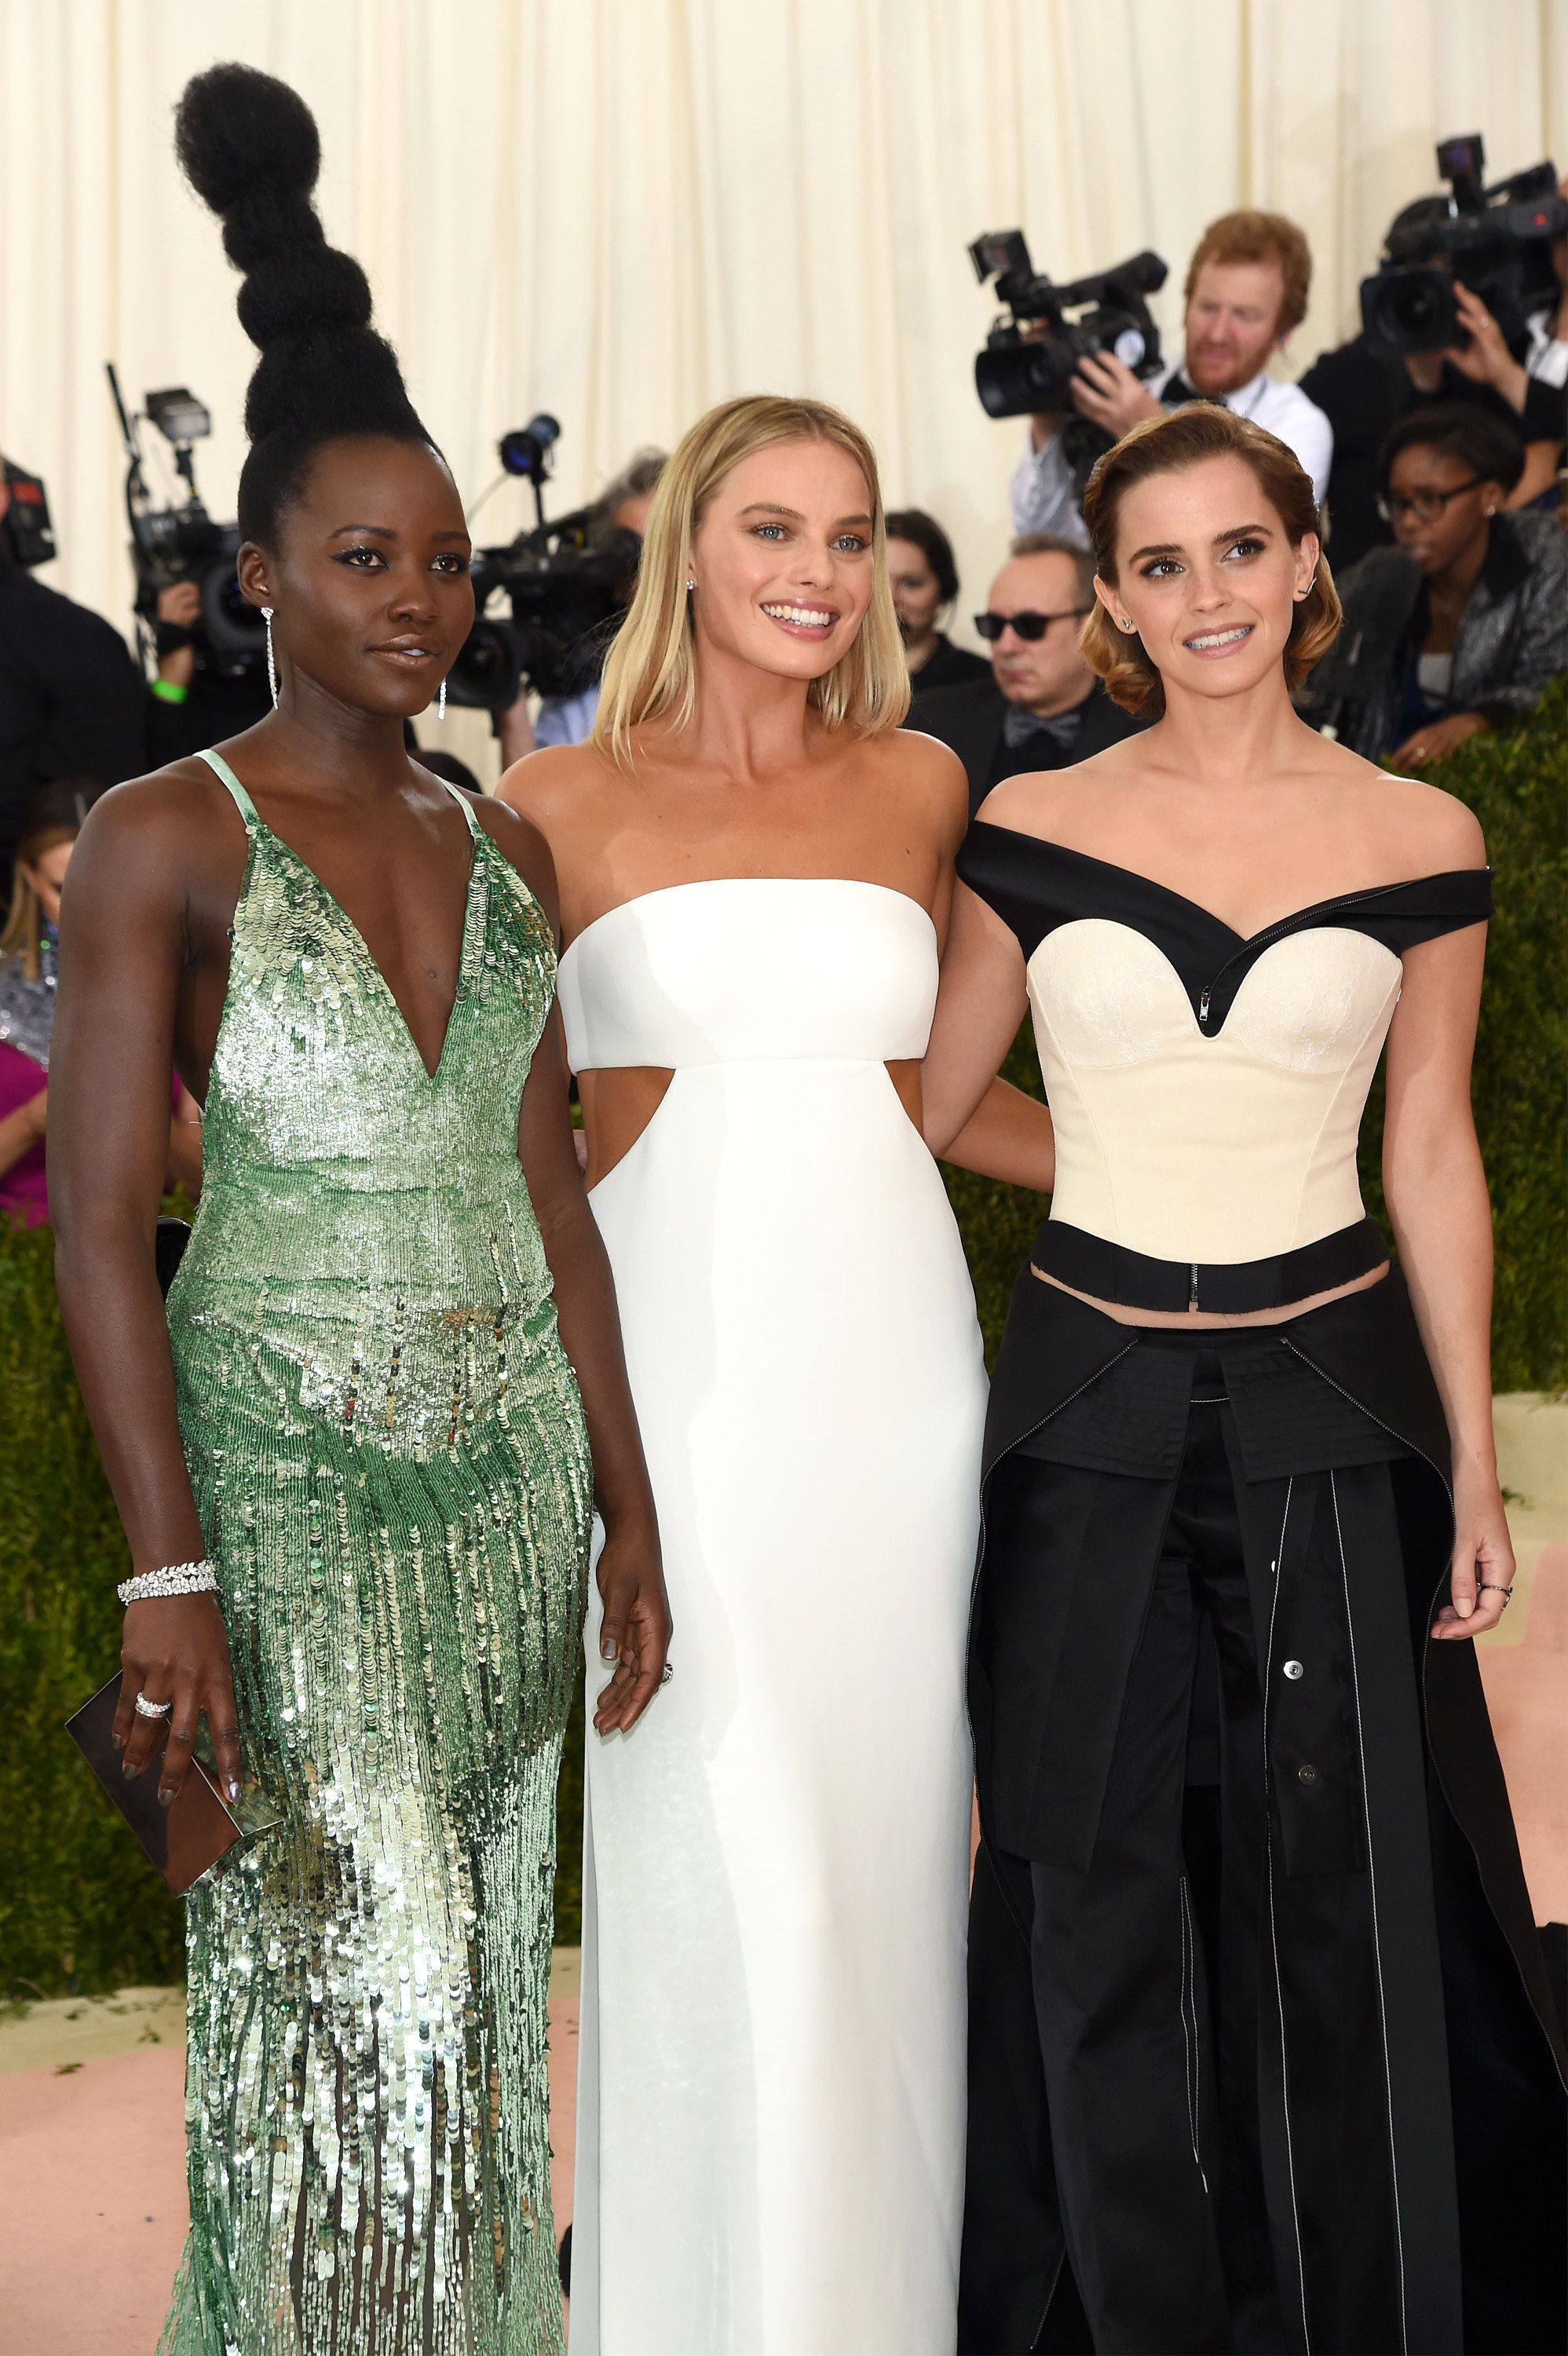 Celebrities Champion Sustainable Fashion At The 2016 Met